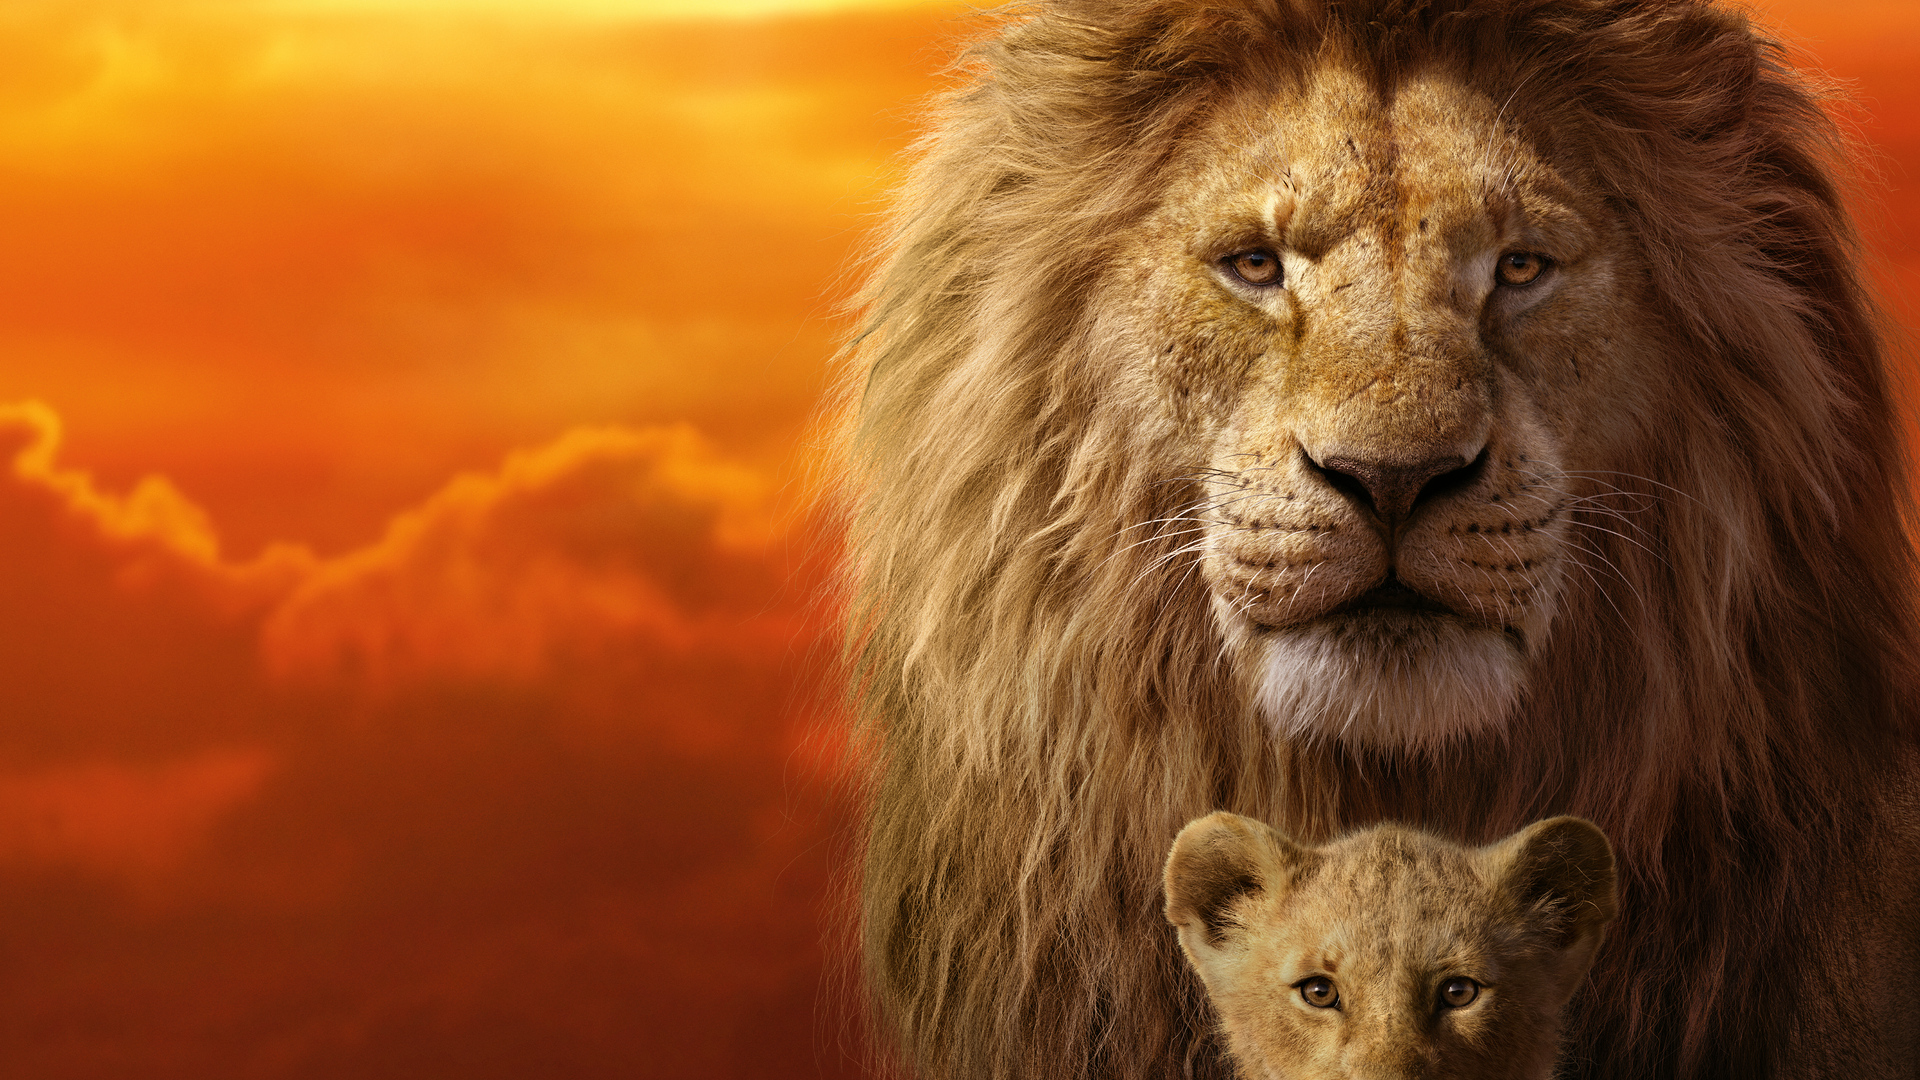 Trends For Lion Images Hd 1080p Wallpaper Download Wallpaper